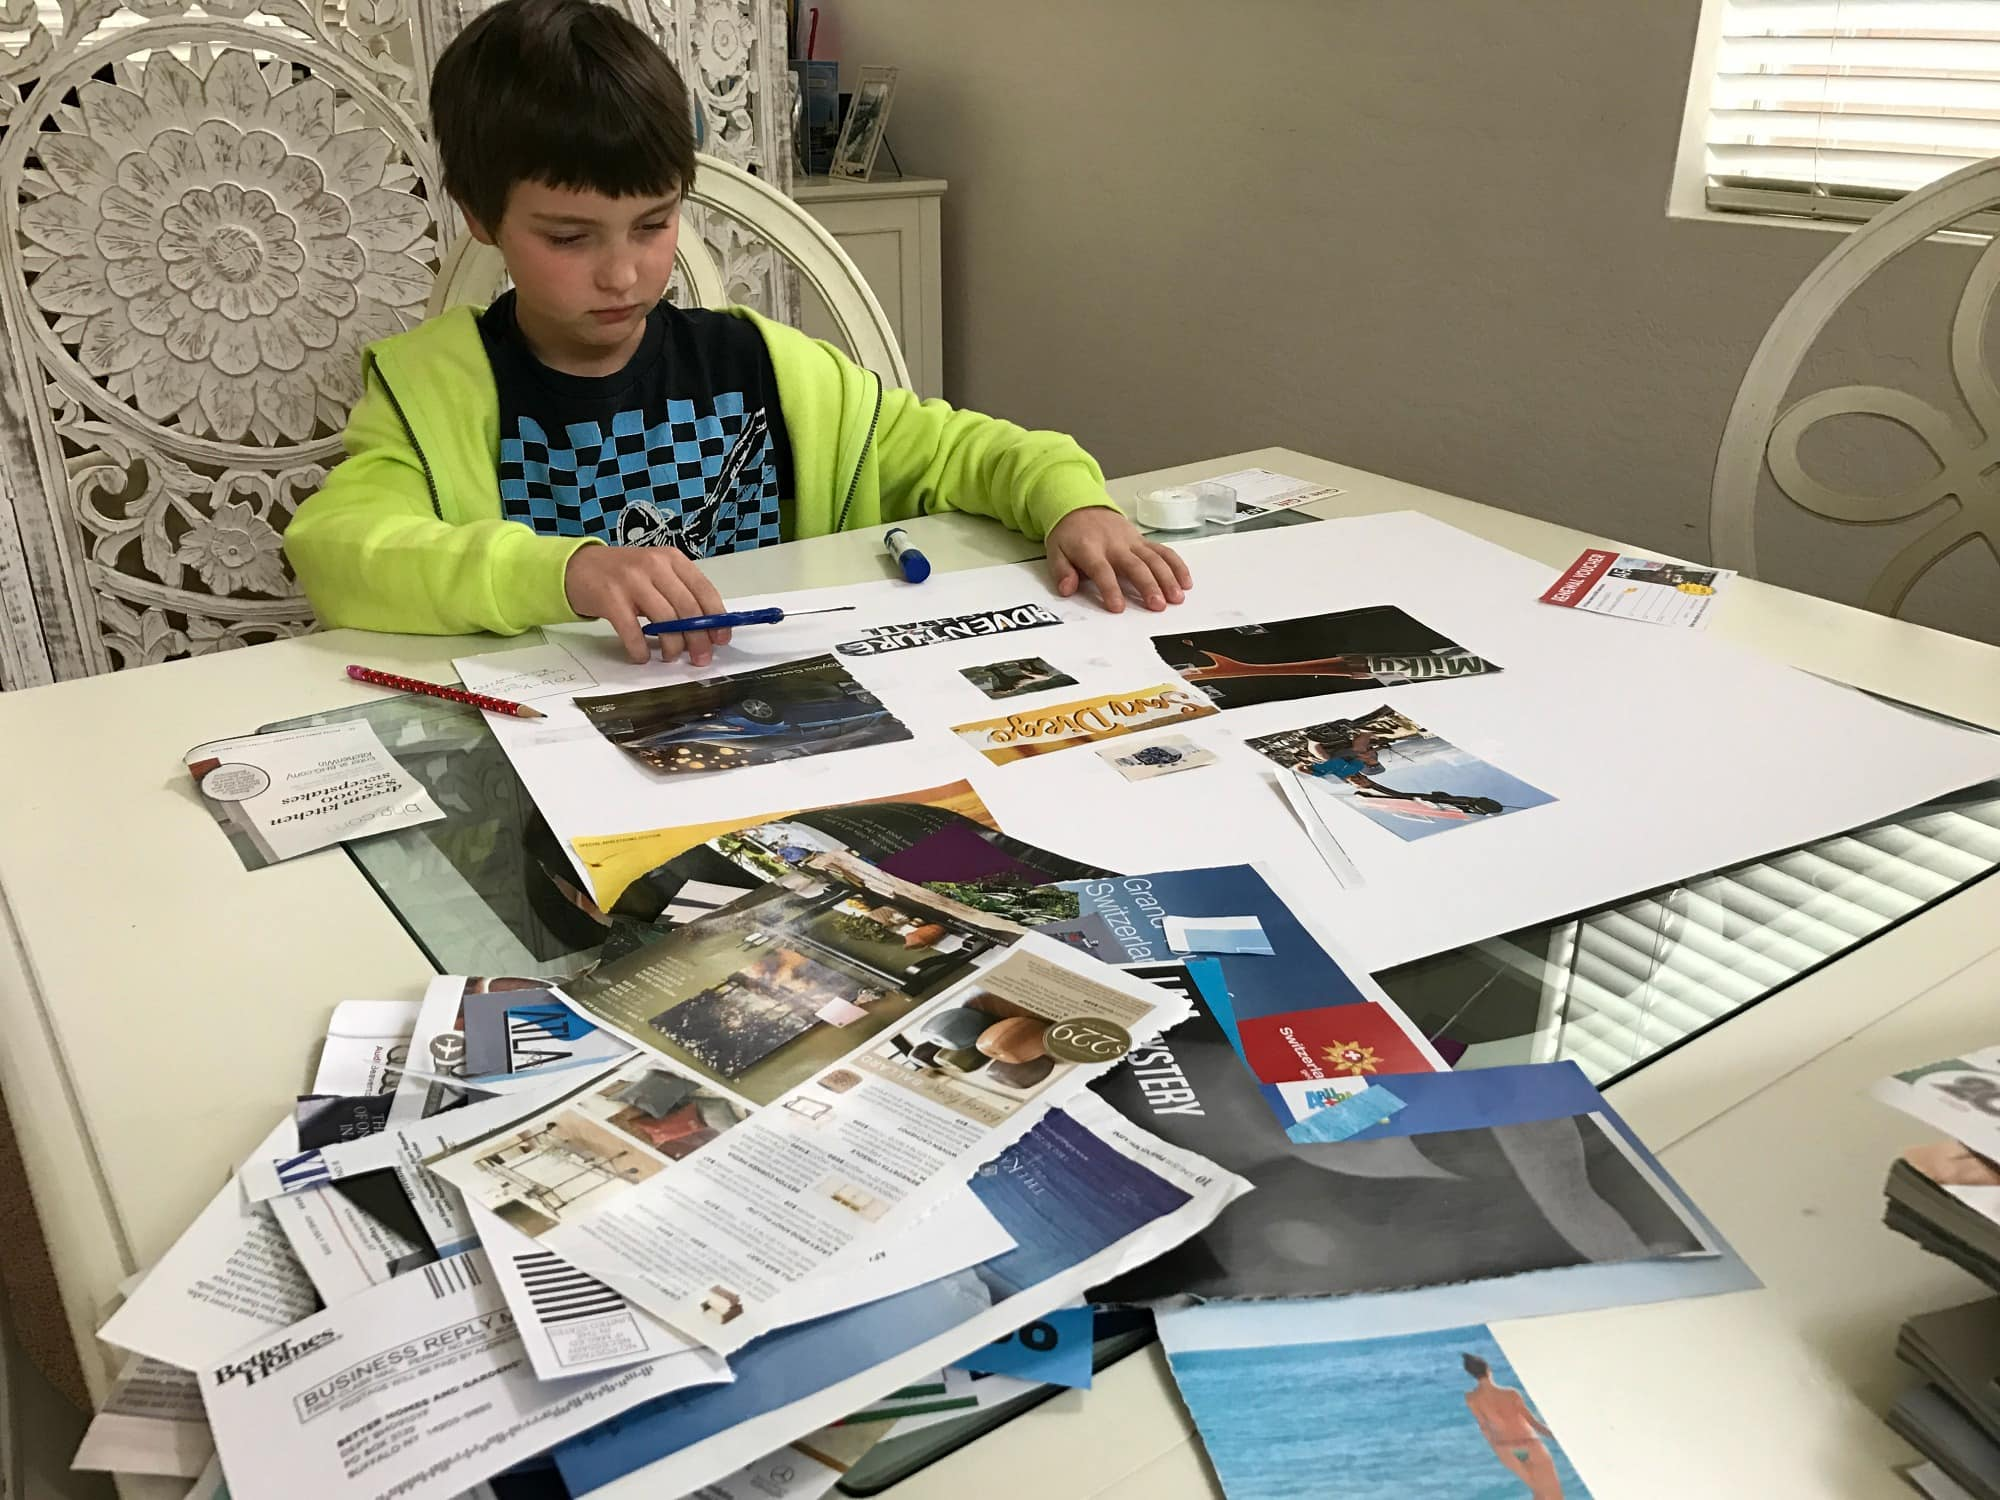 Vision boards empower kids and help them to focus on being positive